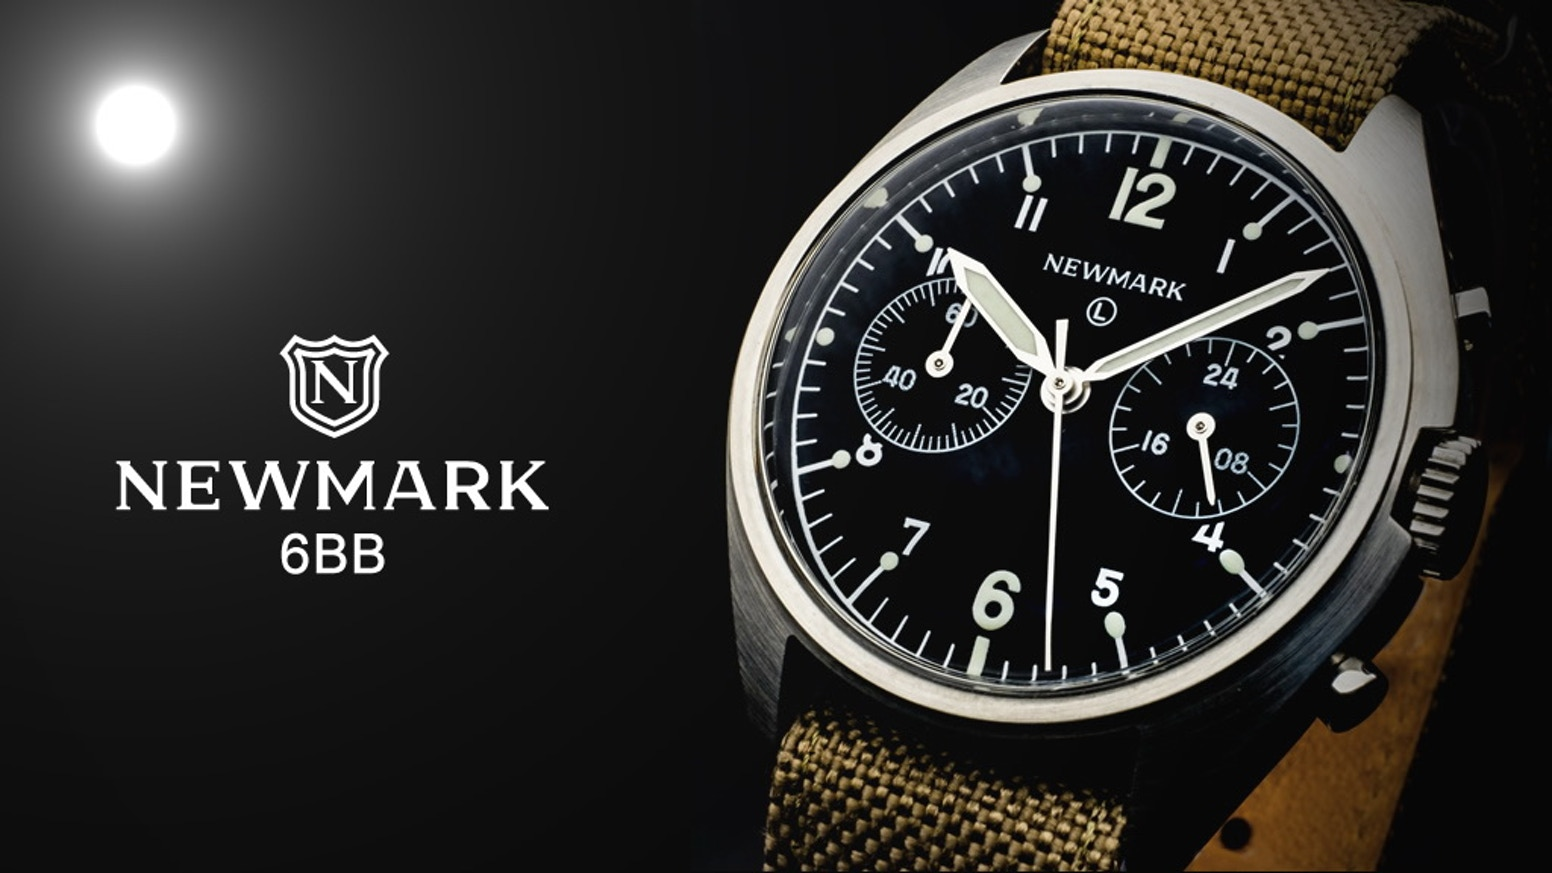 00c56daba88 We are recreating the Newmark Chronograph watch issued to RAF pilots in  1980 and making it